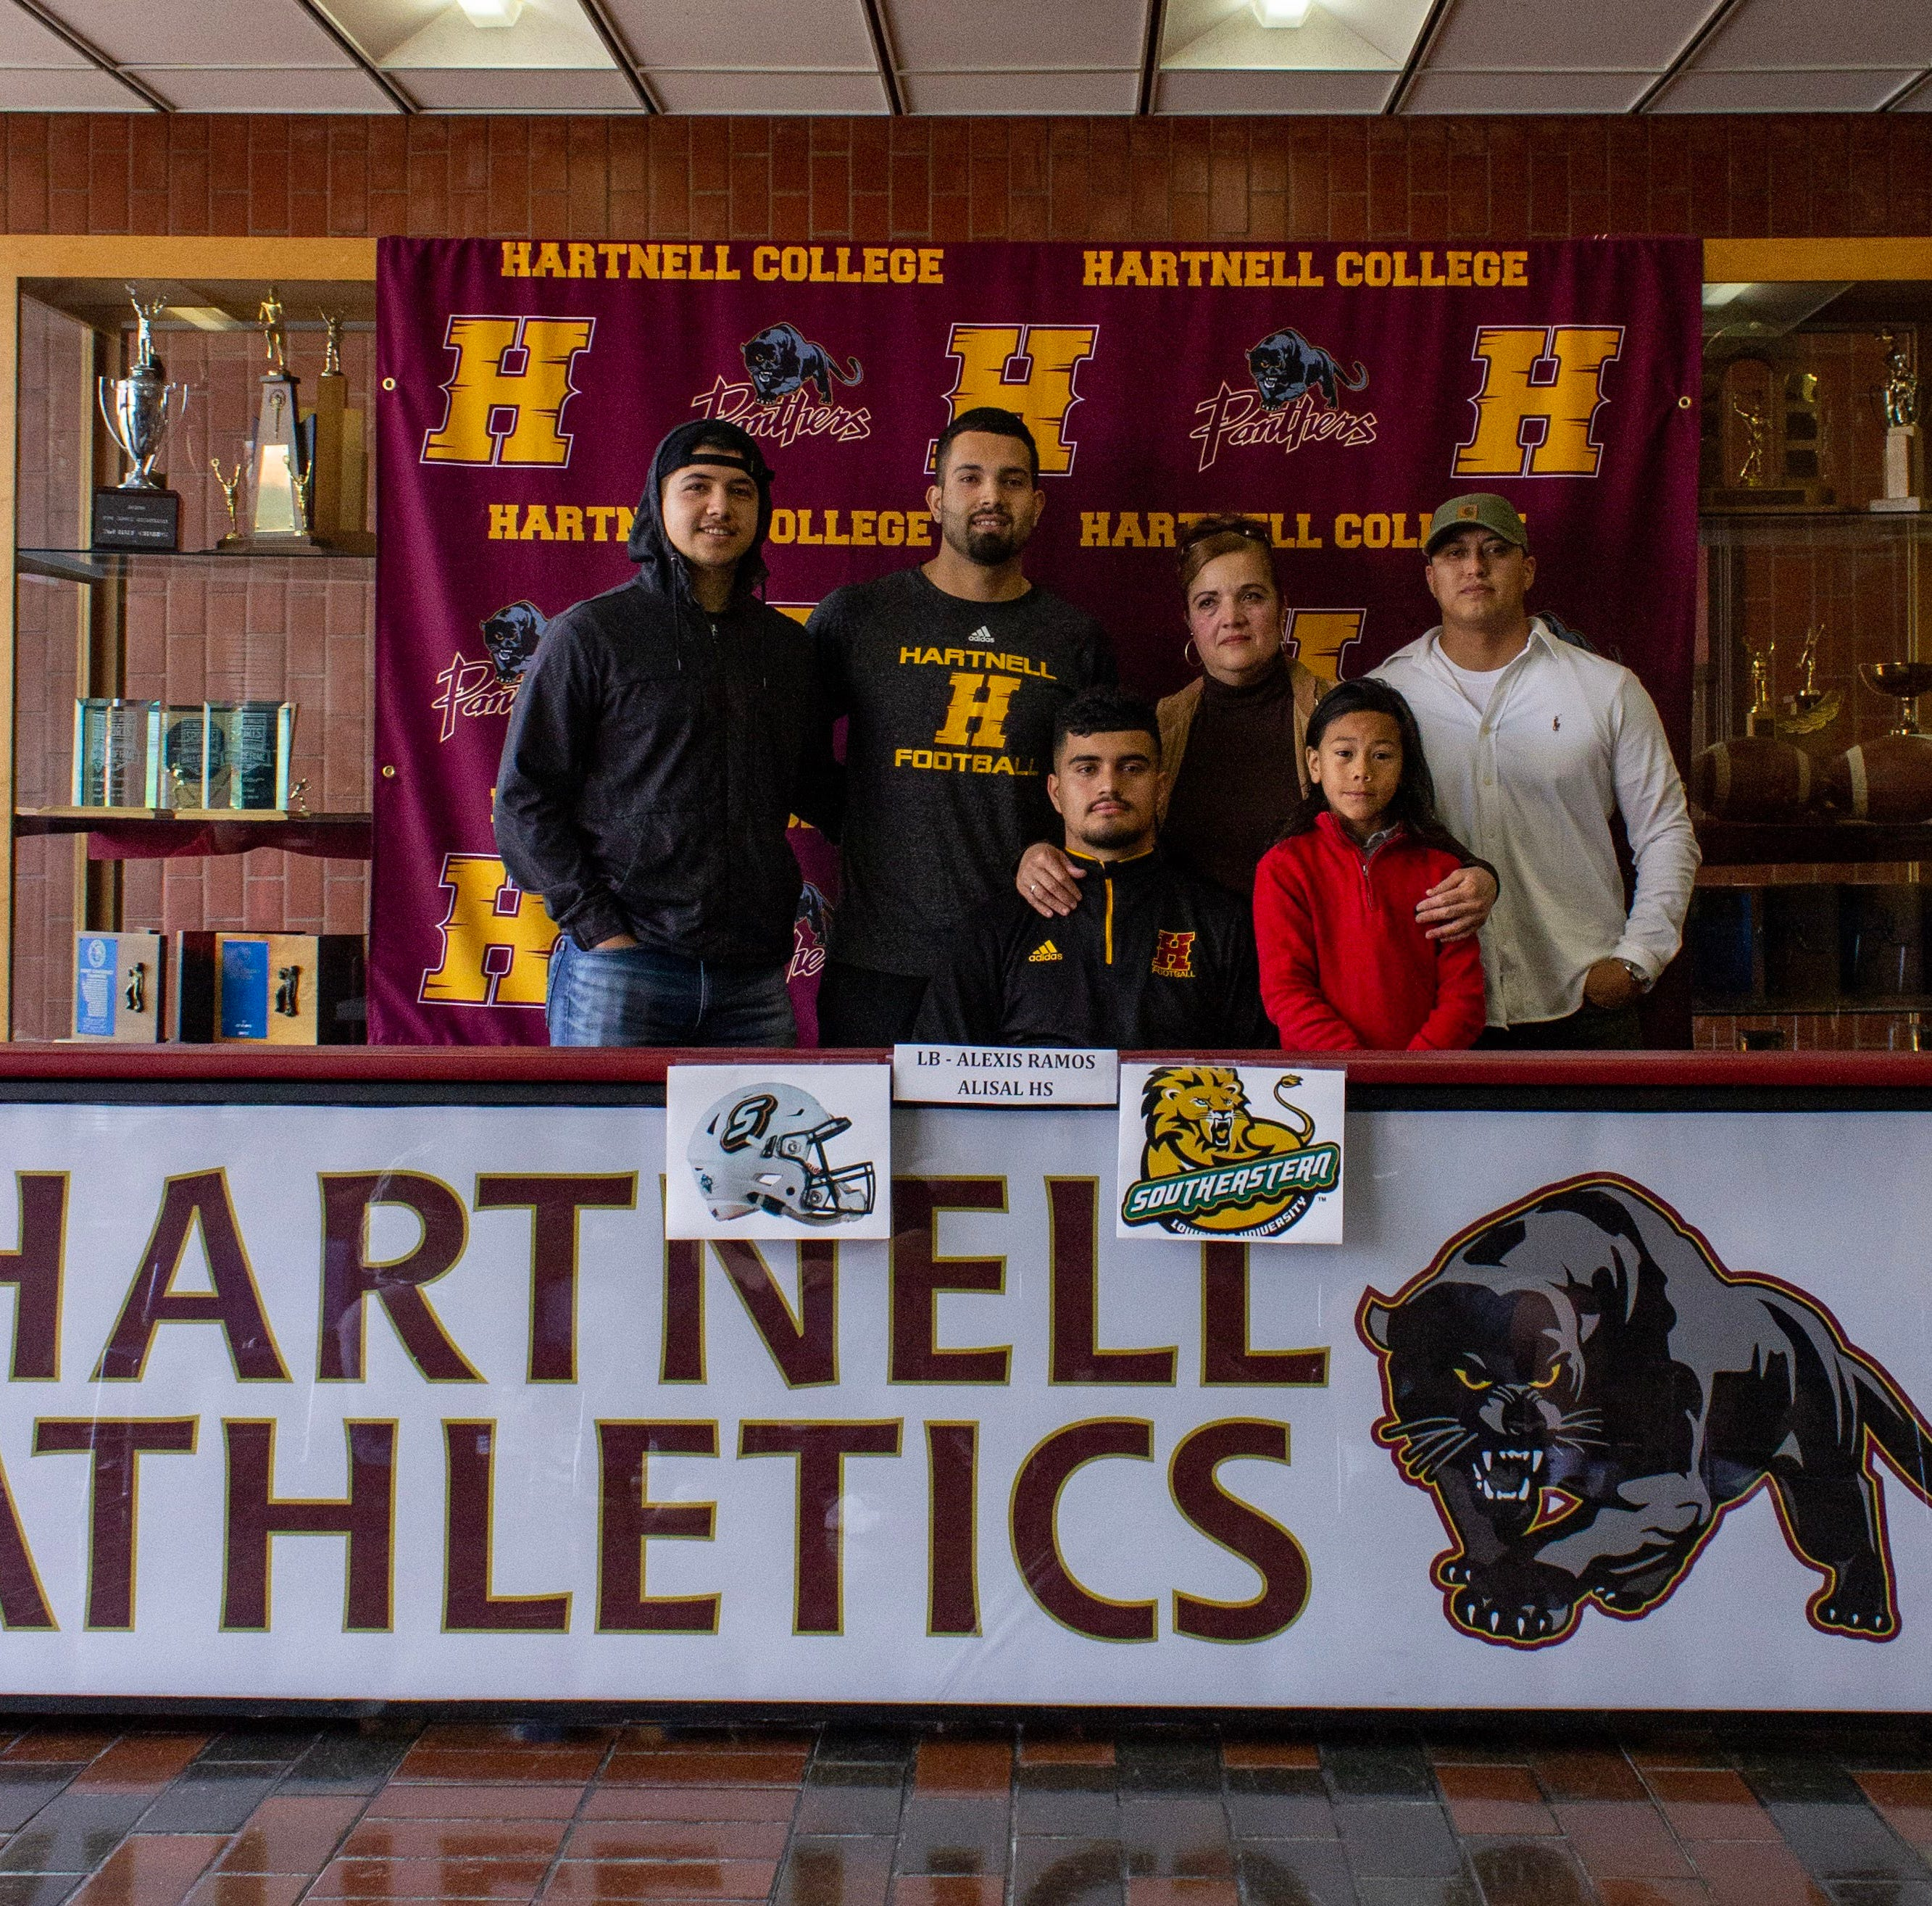 Signed: Alisal alum Ramos officially a Division I football player